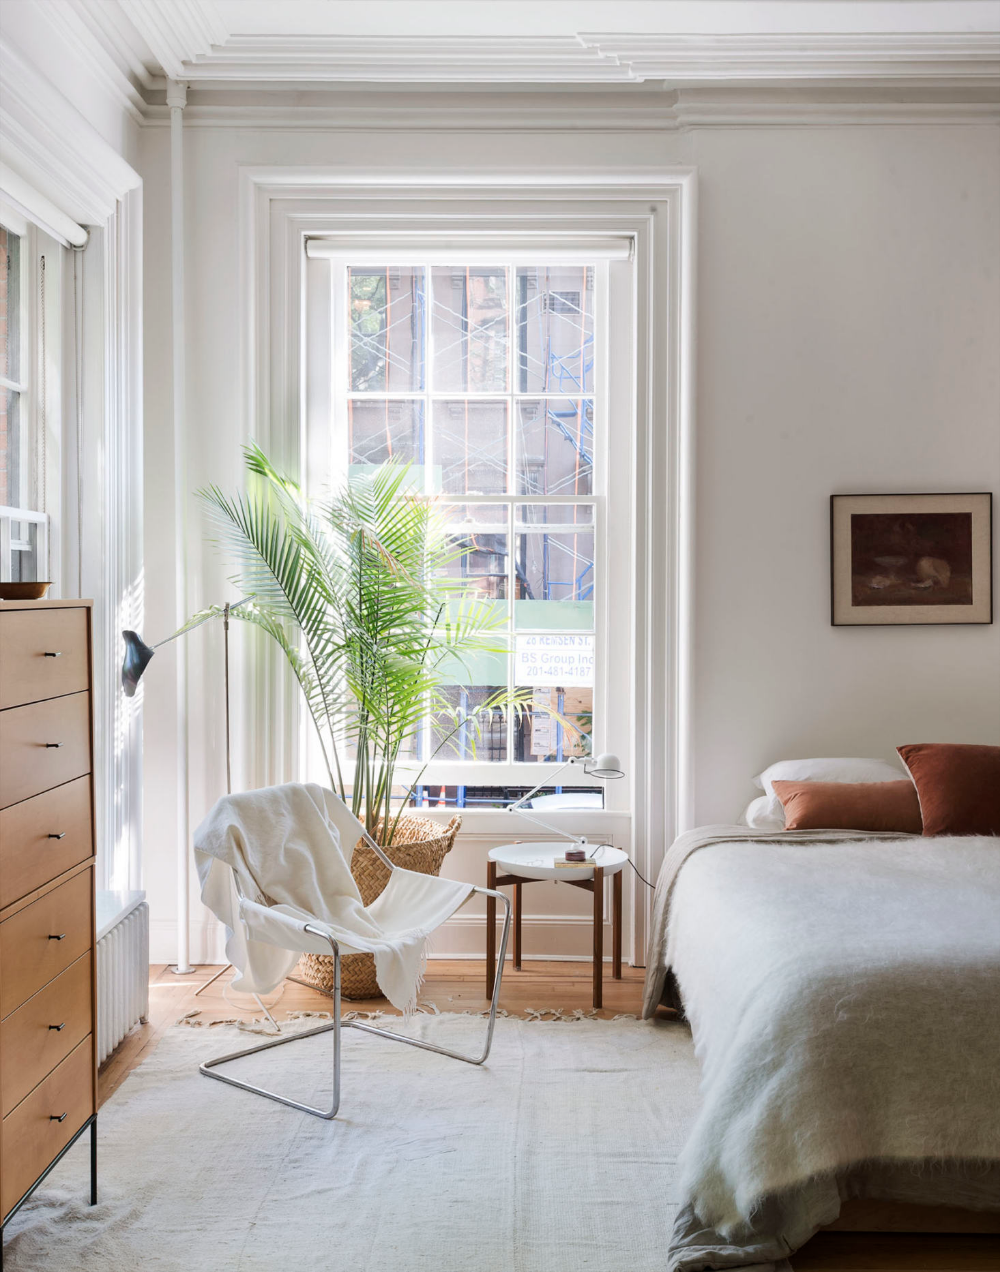 Before/After A Remodelista's Refreshed Parlor Floor Flat